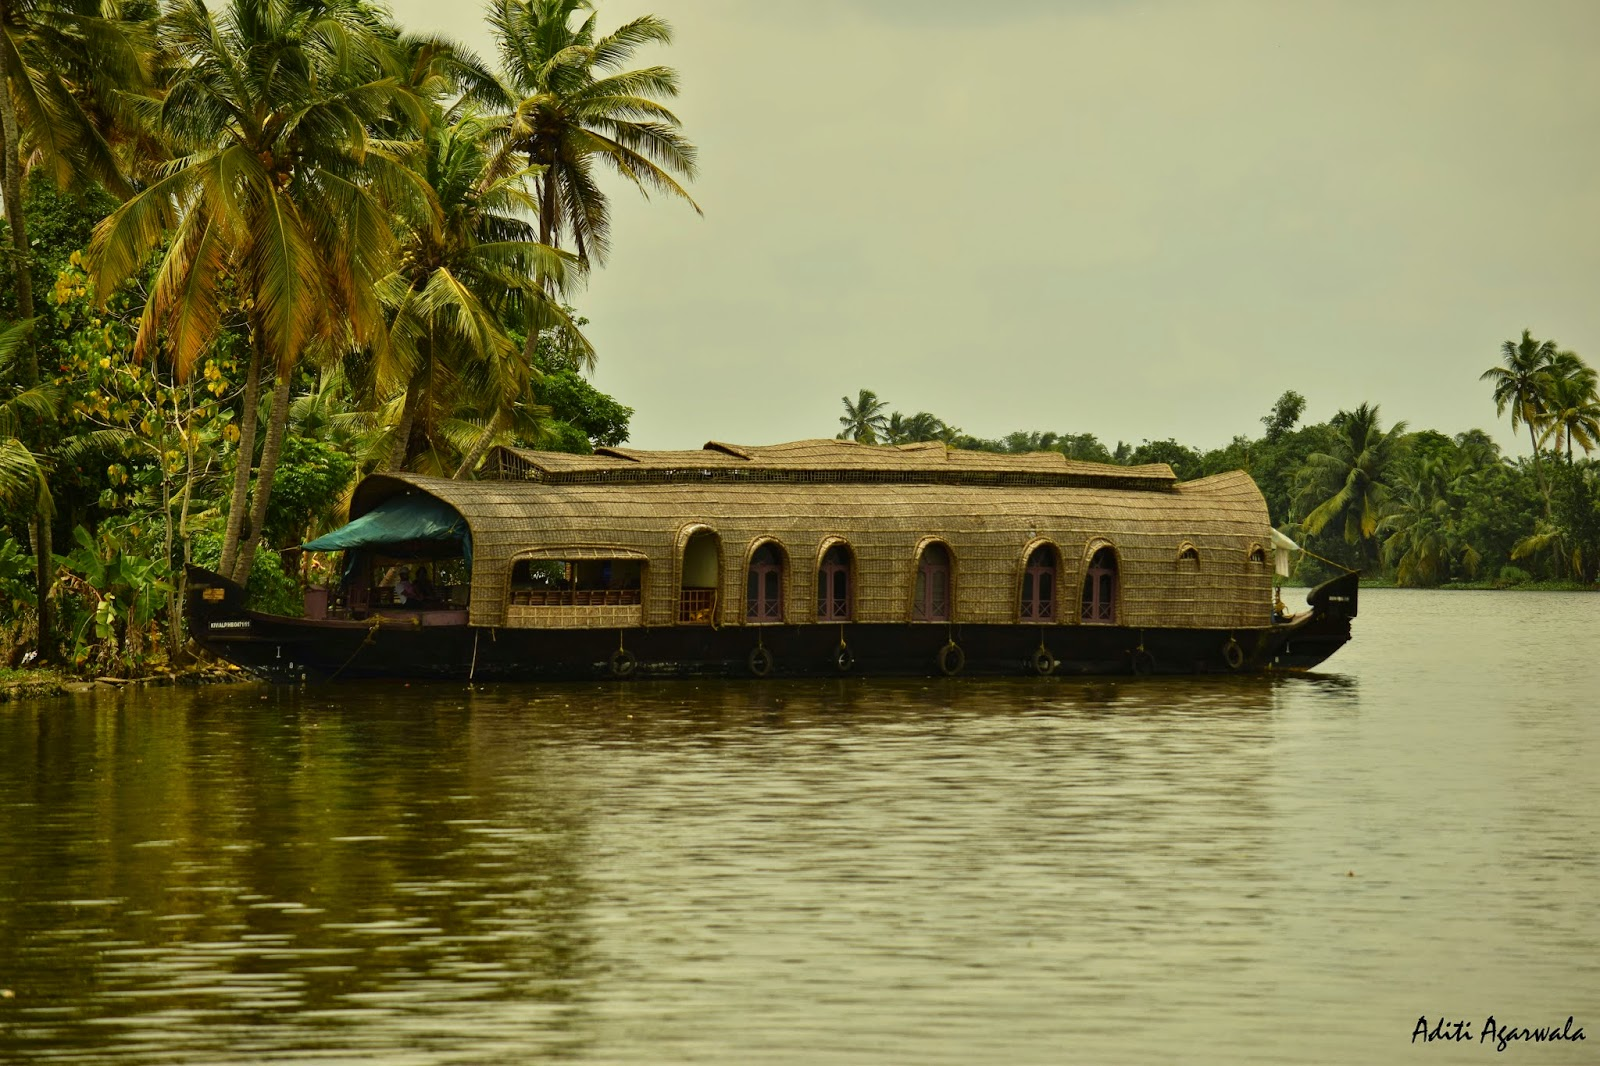 Our Houseboat anchored in the backwaters of Allepey, Kerala